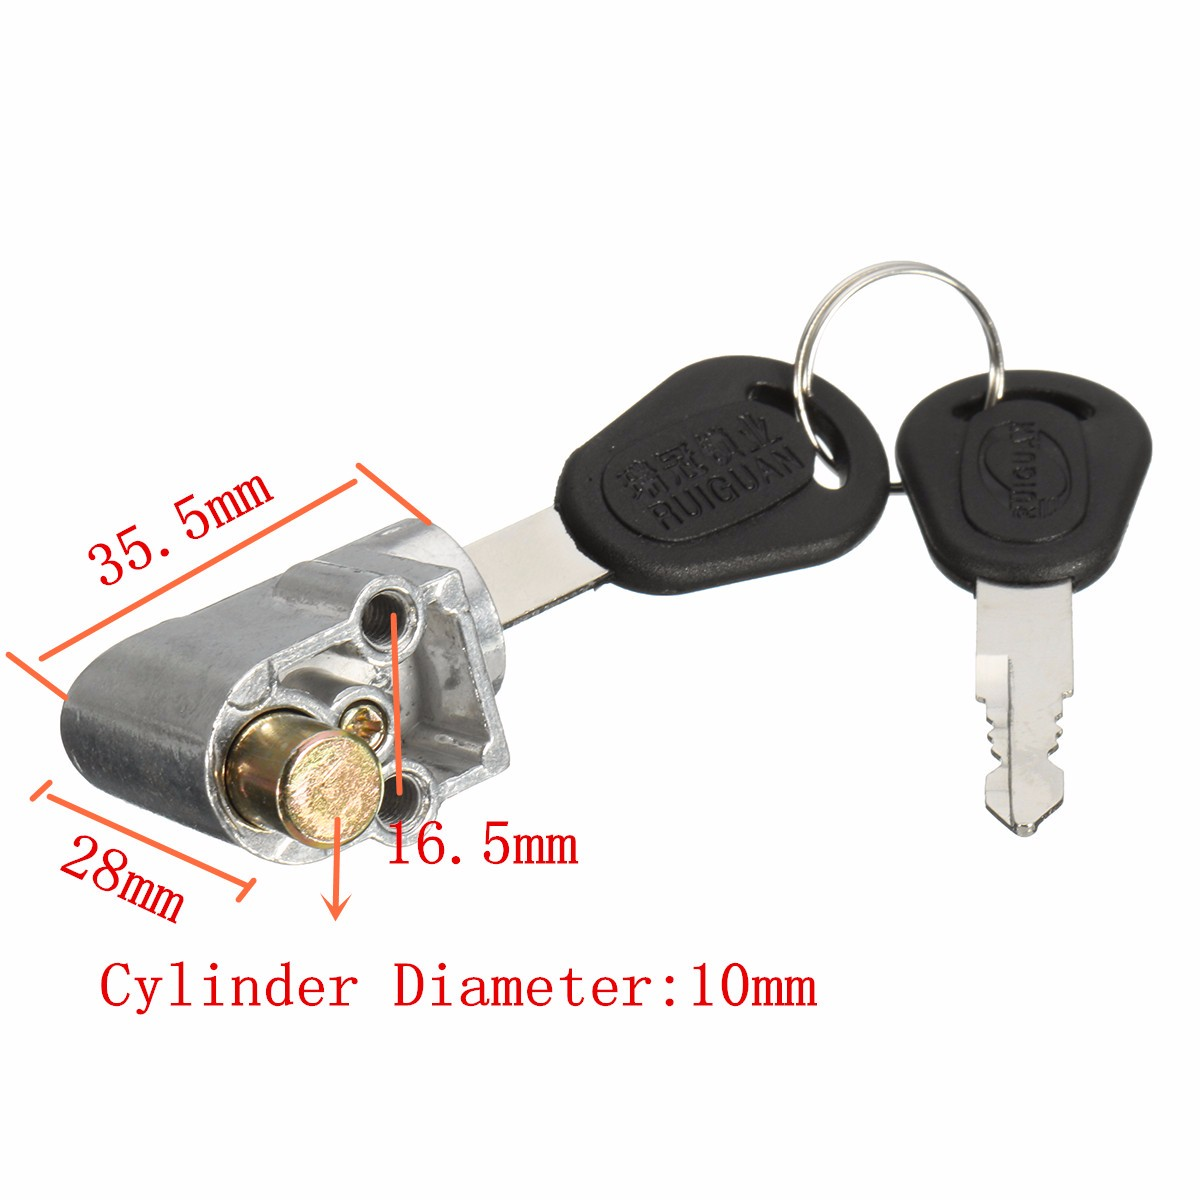 Ignition Switch Battery Safety Lock For Motorcycle Electric Bike Scooter +2 Keys